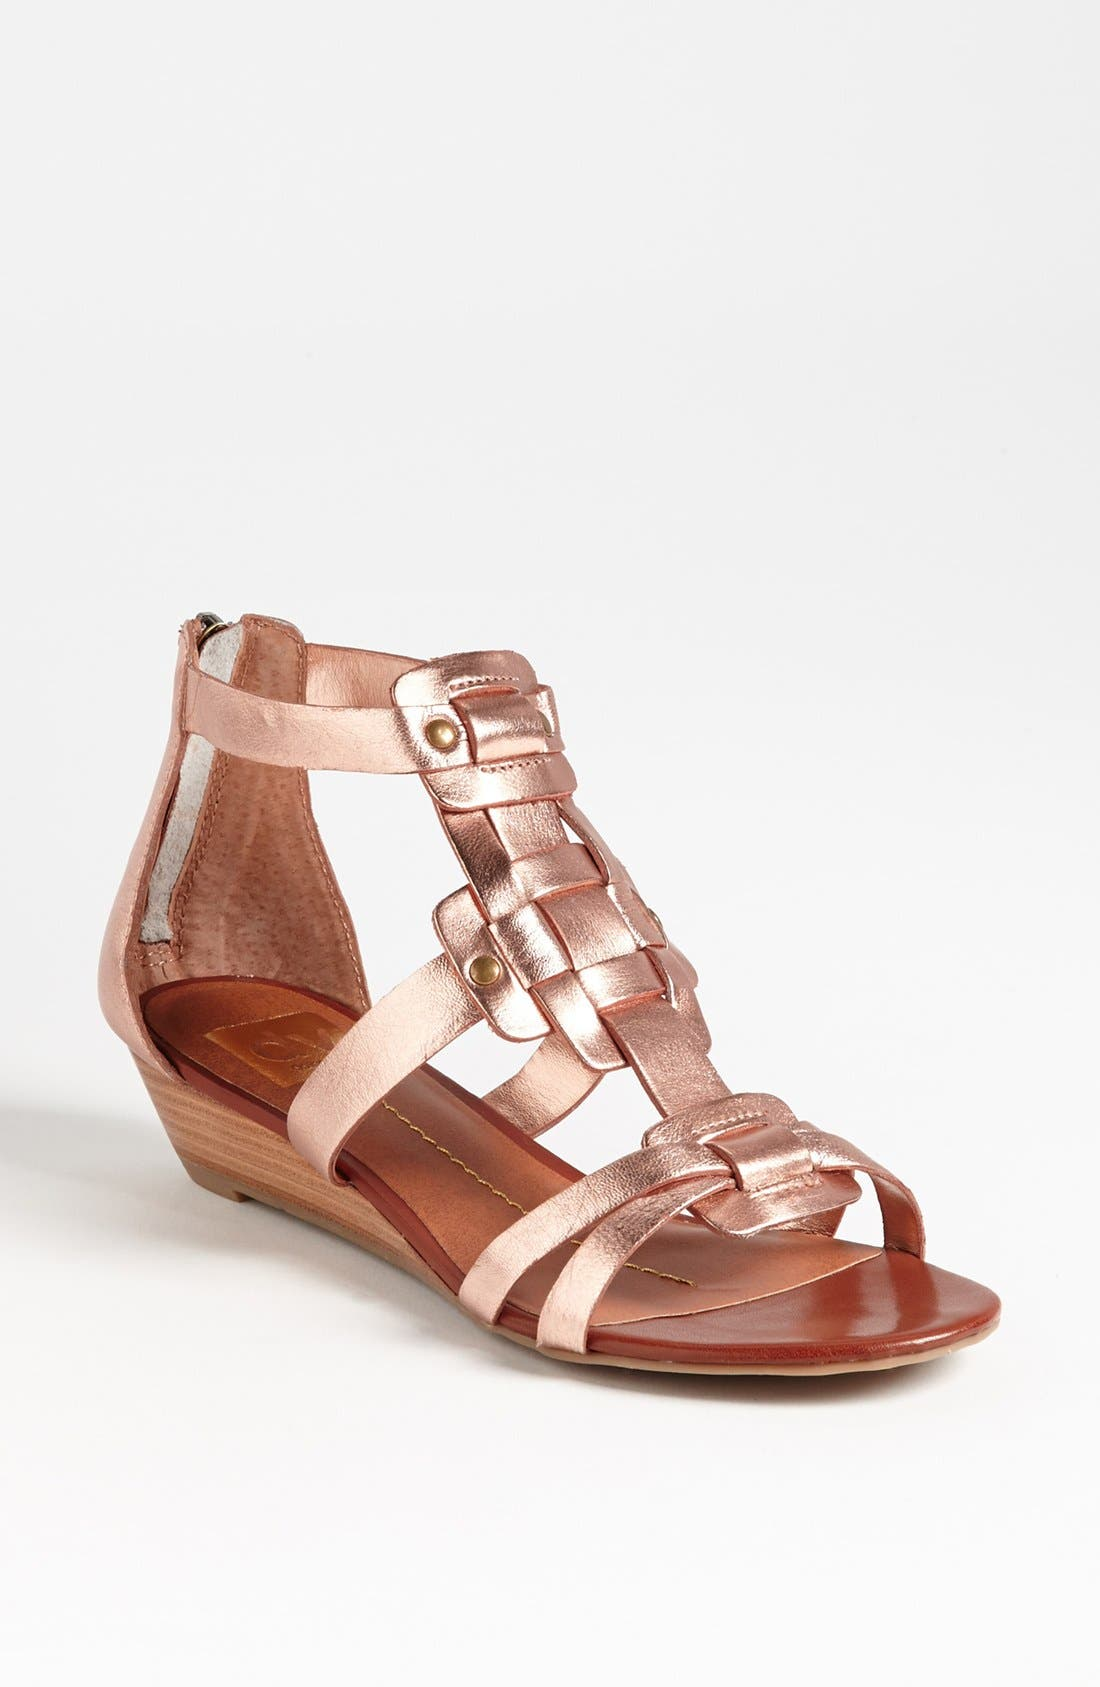 Alternate Image 1 Selected - DV by Dolce Vita 'Fana' Sandal